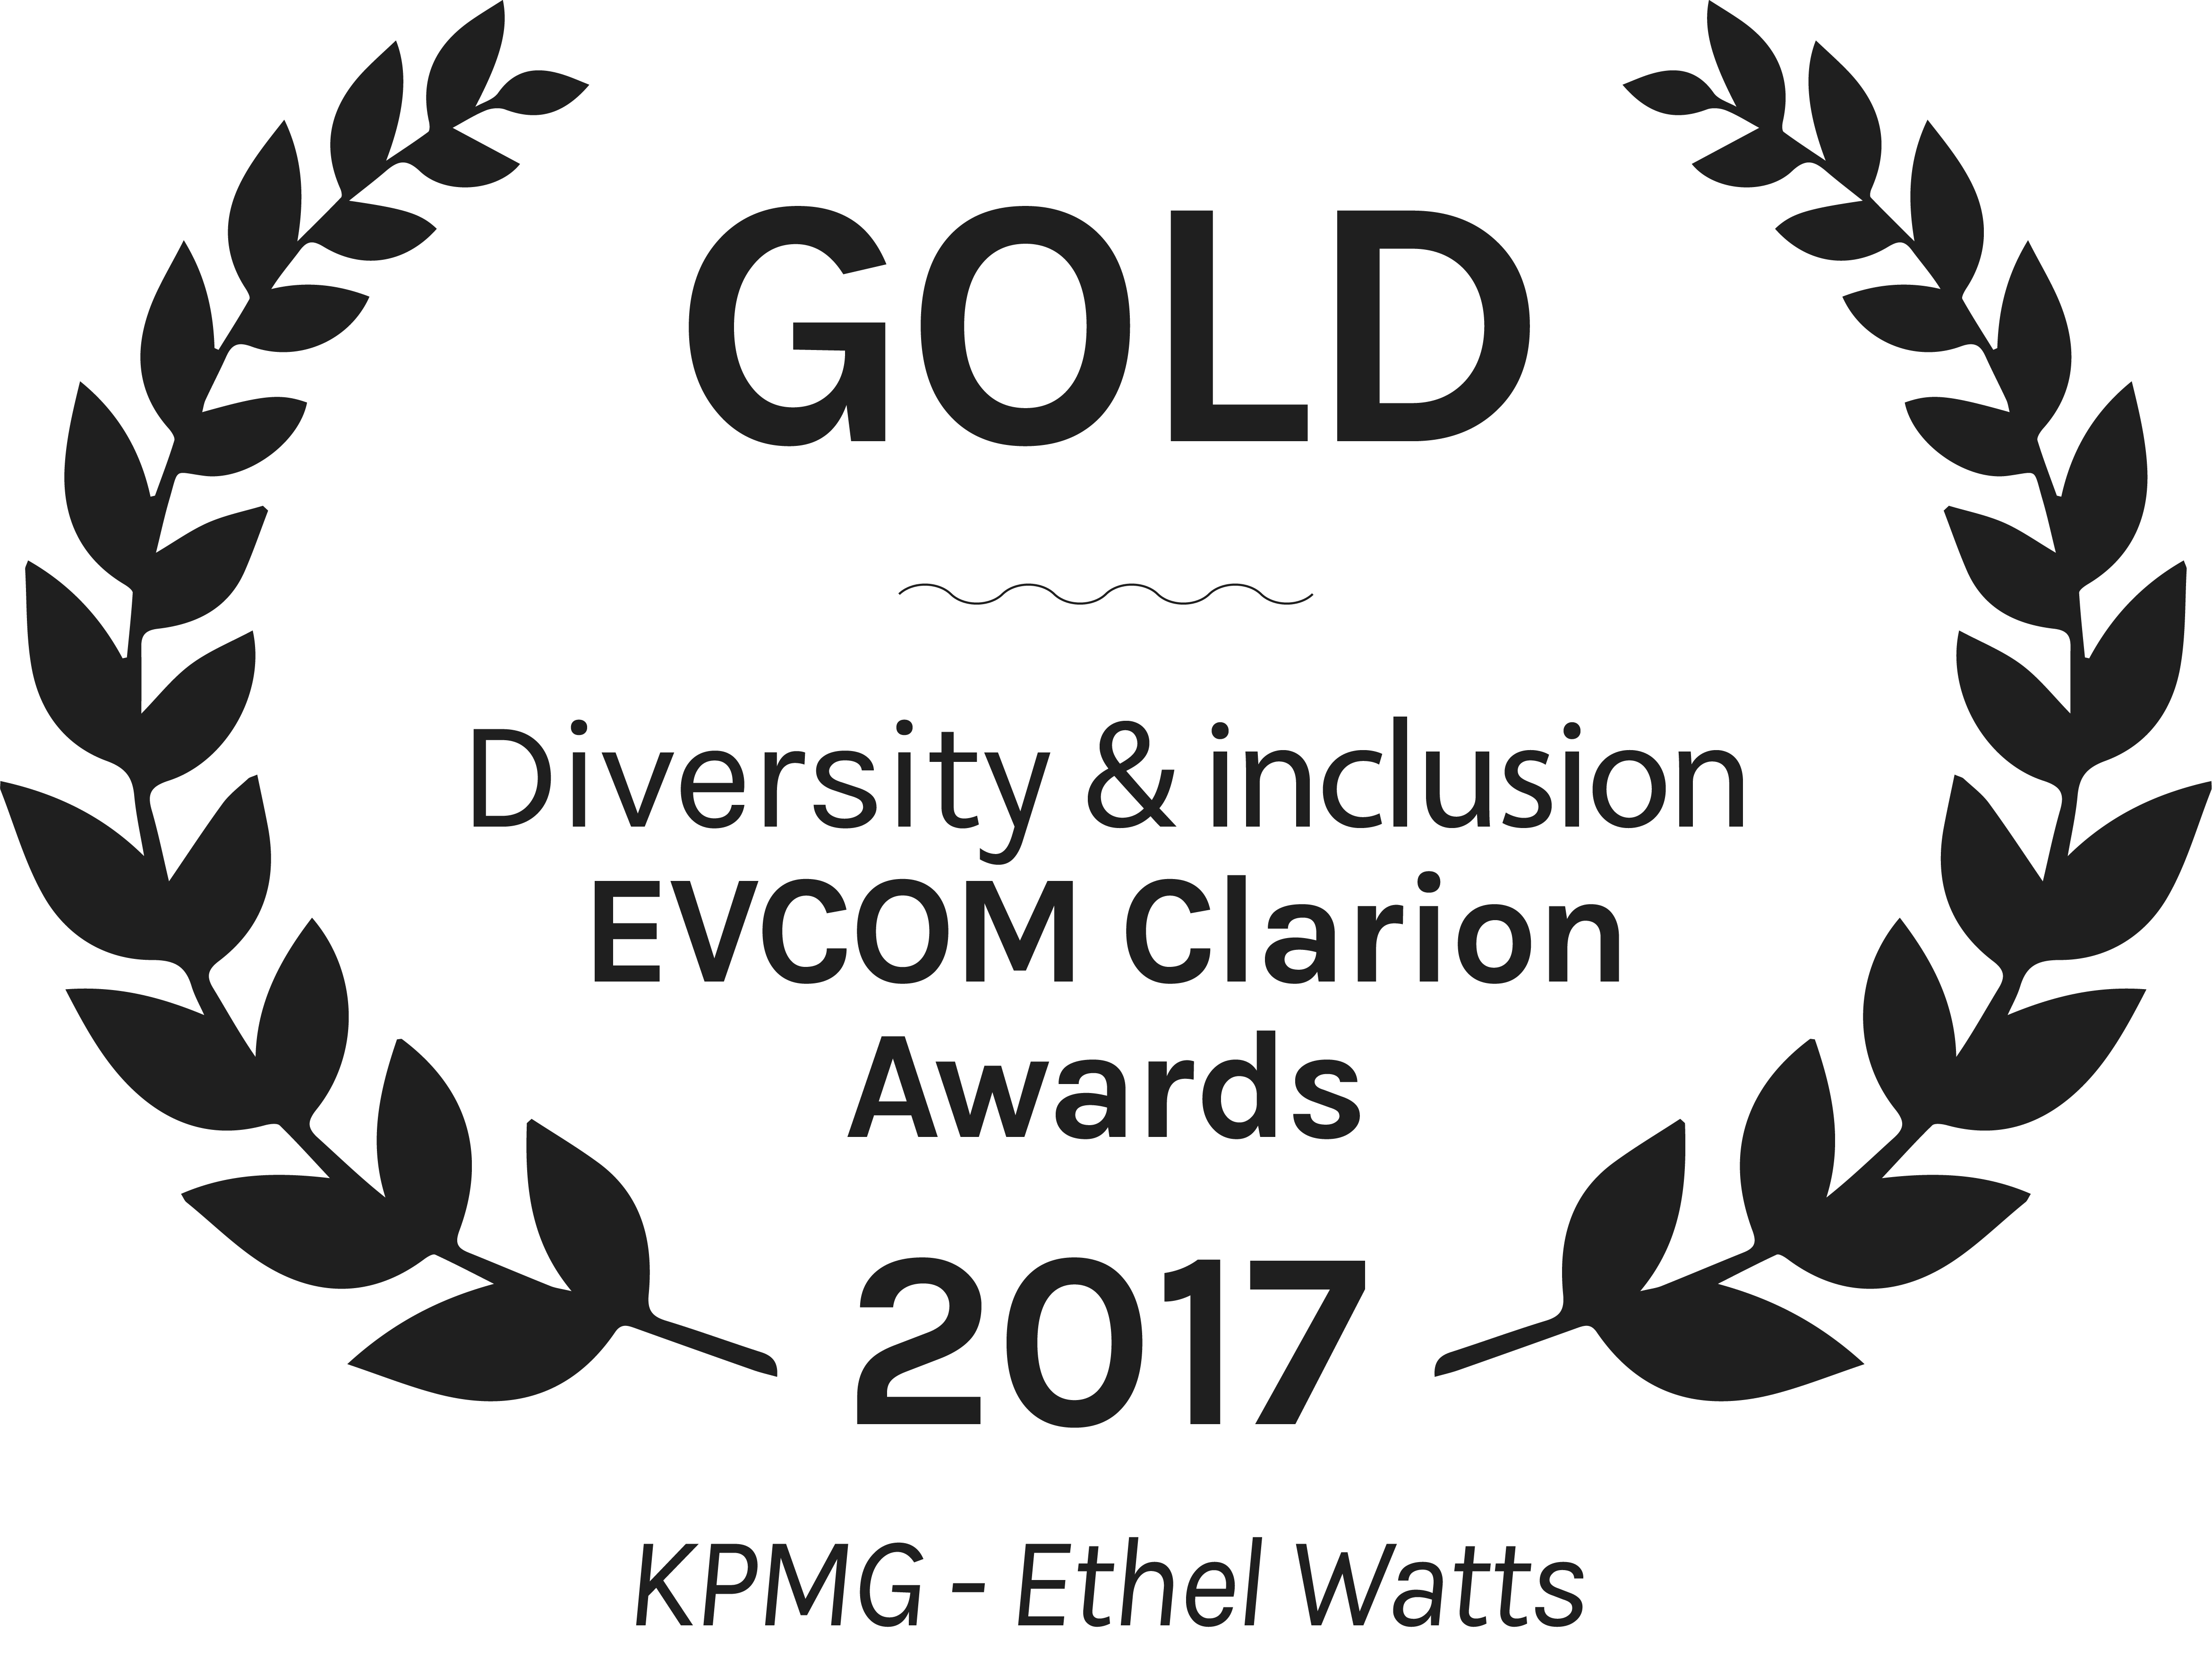 gold-diversity-inclusion-EVCOM-awards-kpmg-ethel-watts.png